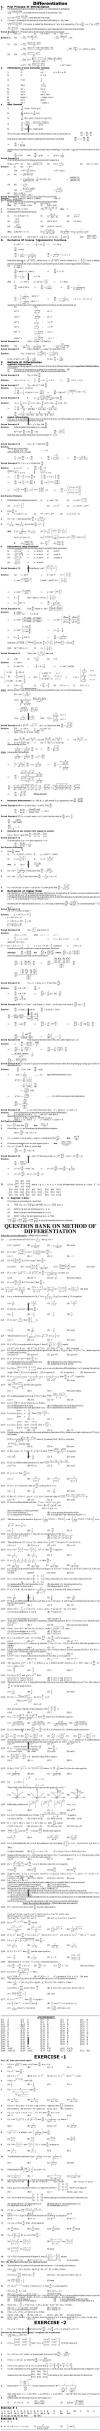 Maths Study Material - Chapter 12